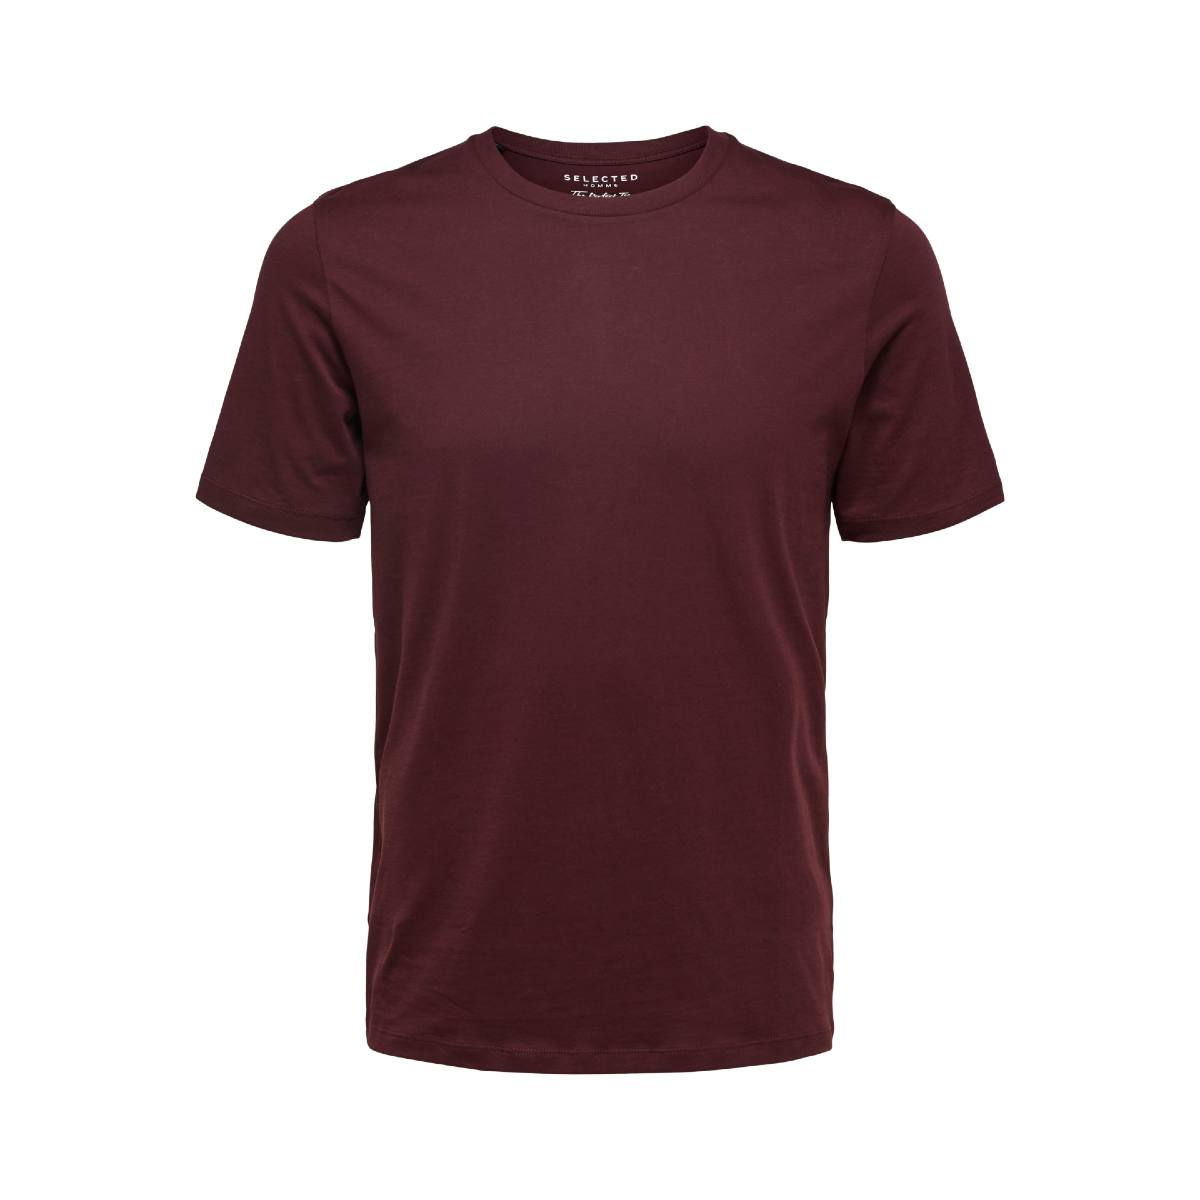 O-Neck T-Shirt Winetasting by Selected Homme | Restoration Yard